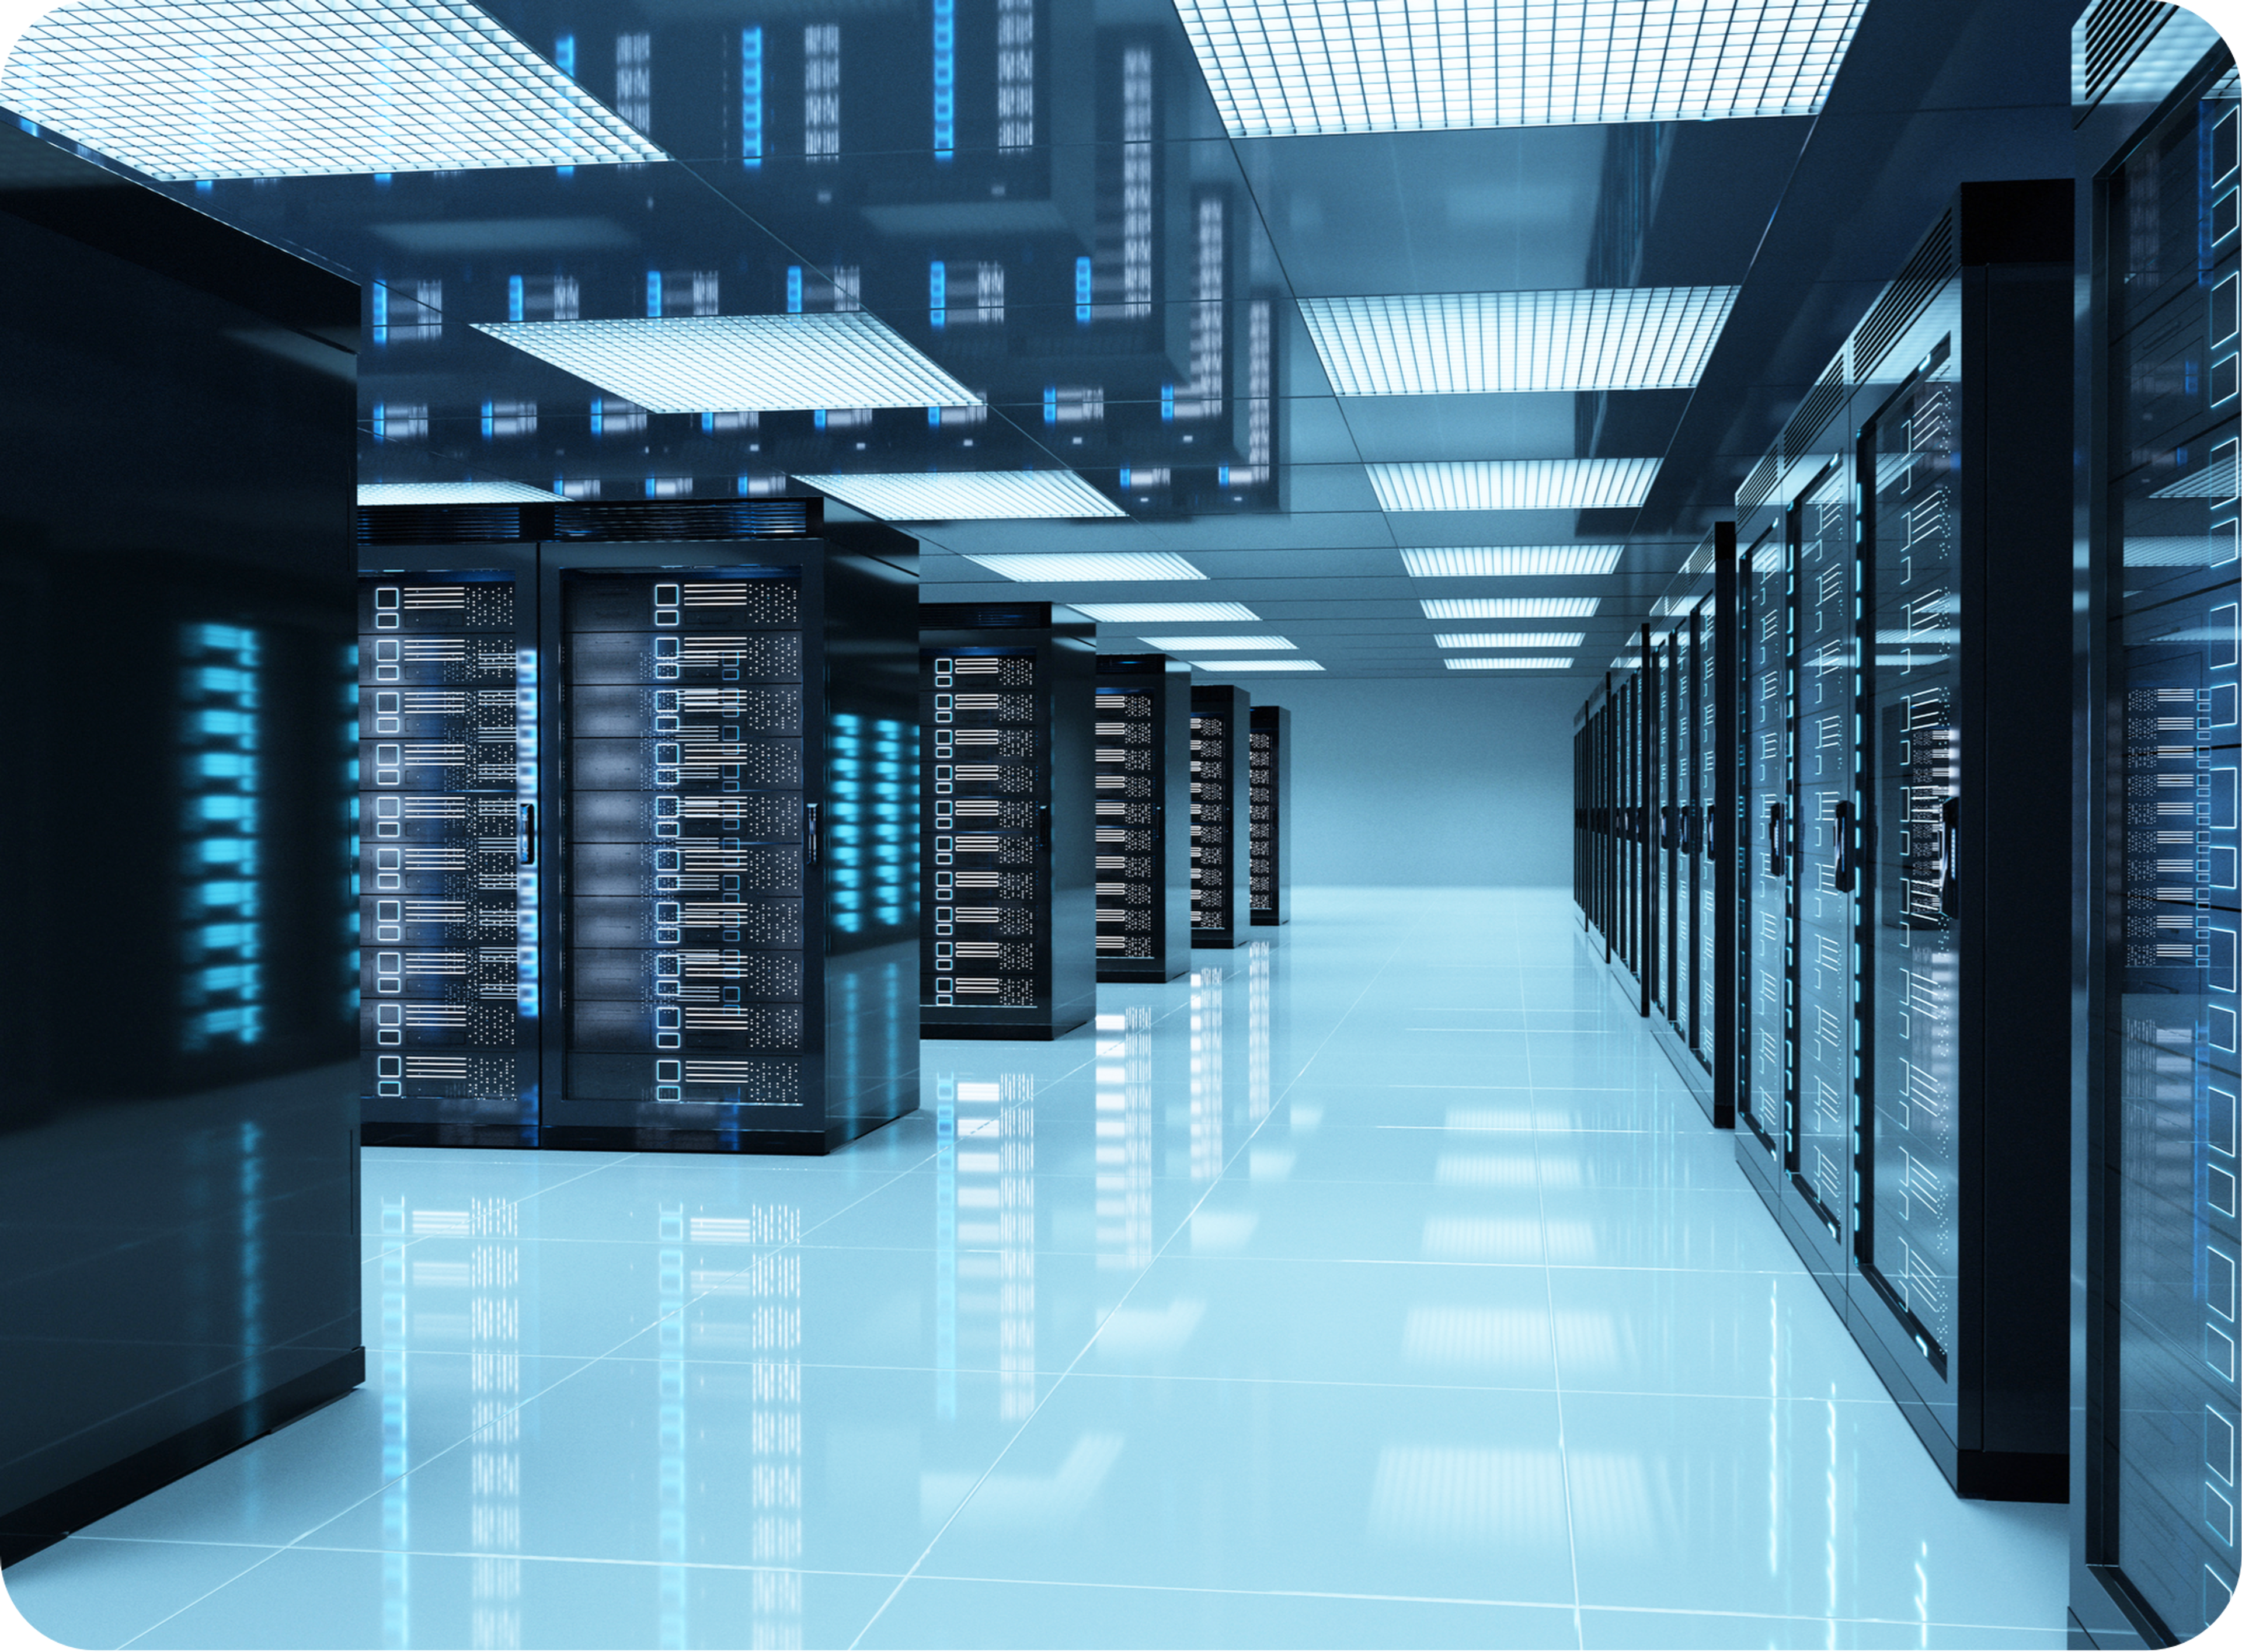 Picture of blue data center room